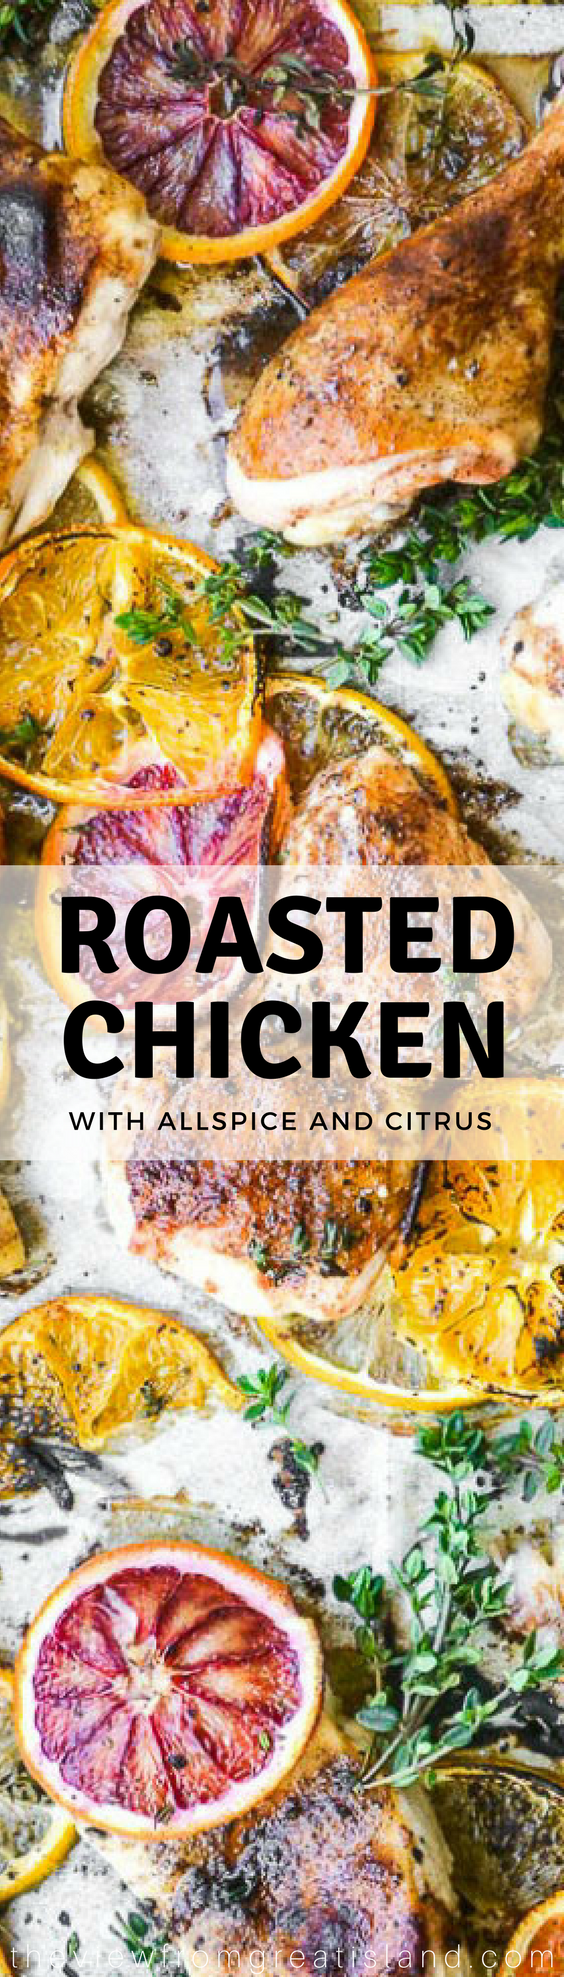 Roasted Chicken with Allspice and Citrus ~ this gorgeous sheet pan chicken meal is a fabulous way to celebrate fresh citrus! #chicken #bestchicken #dinner #easychicken #citrus #ottolenghi #roastedcitrus #bloodoranges #oranges #lemons #healthydinner #whole30 #glutenfree #paleo #lowcarb #maincourse #sheetpandinner